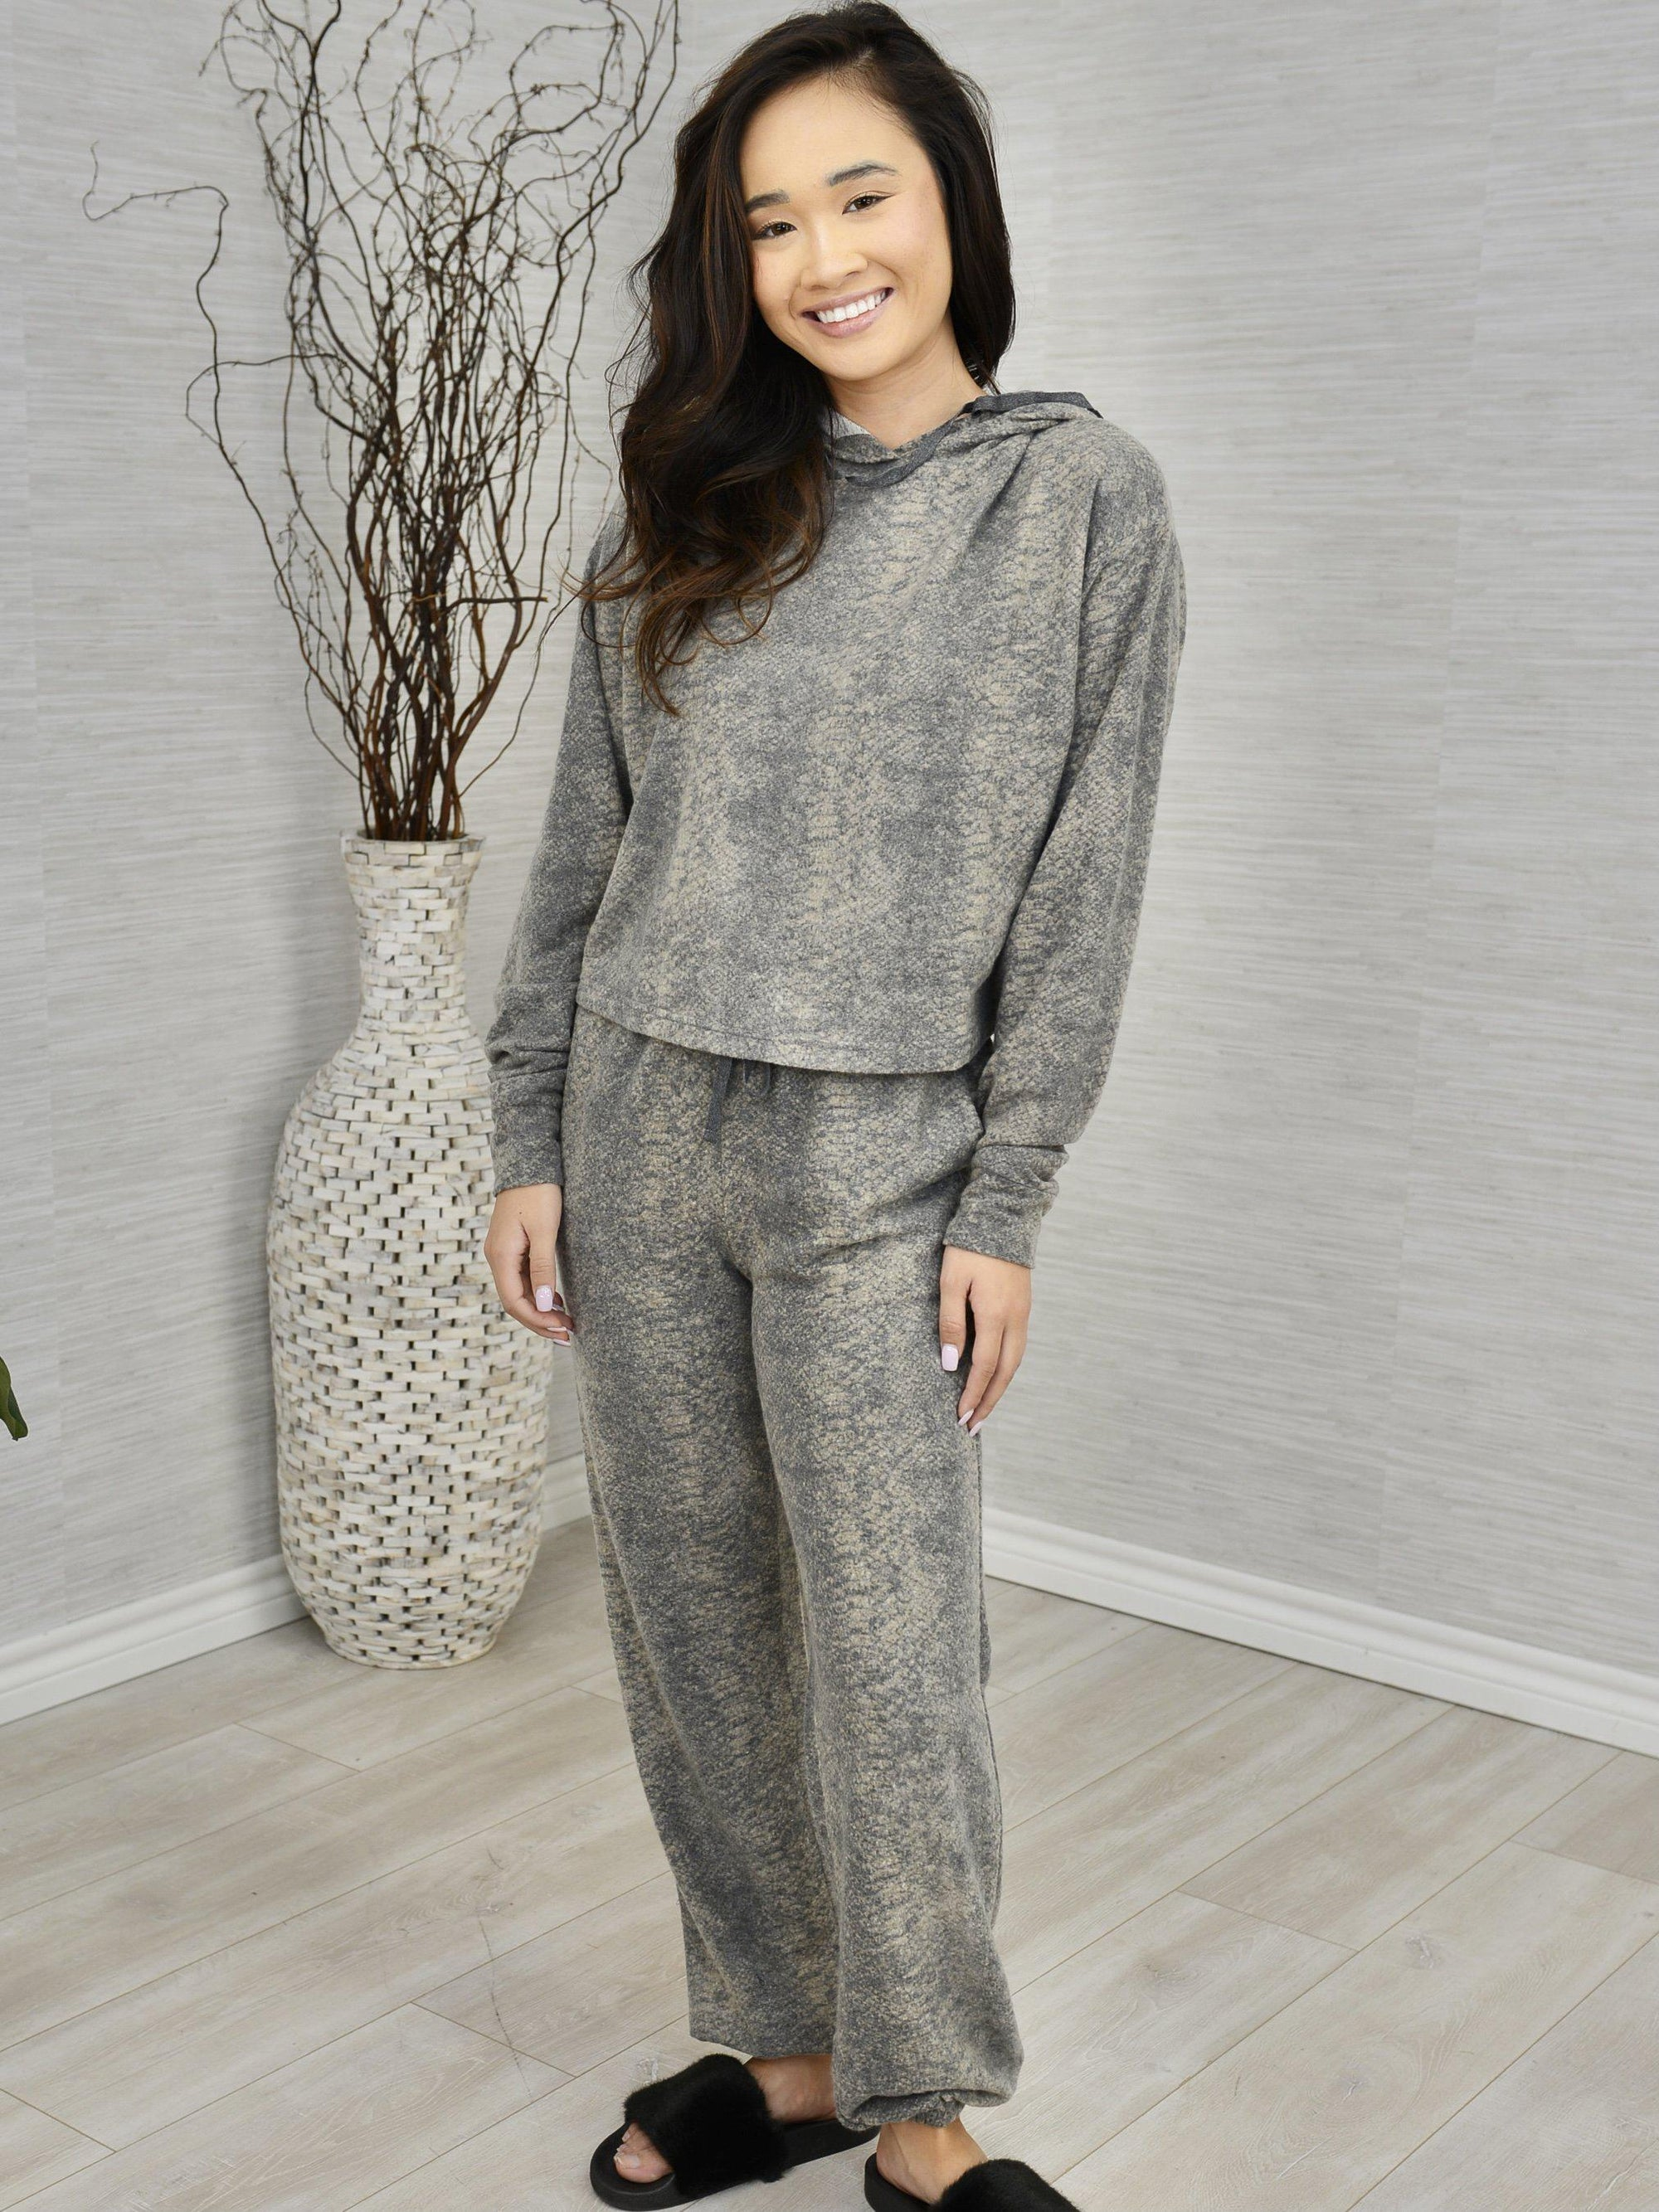 Forest Hike Loungewear Set-Women's -New Arrivals-Runway Seven